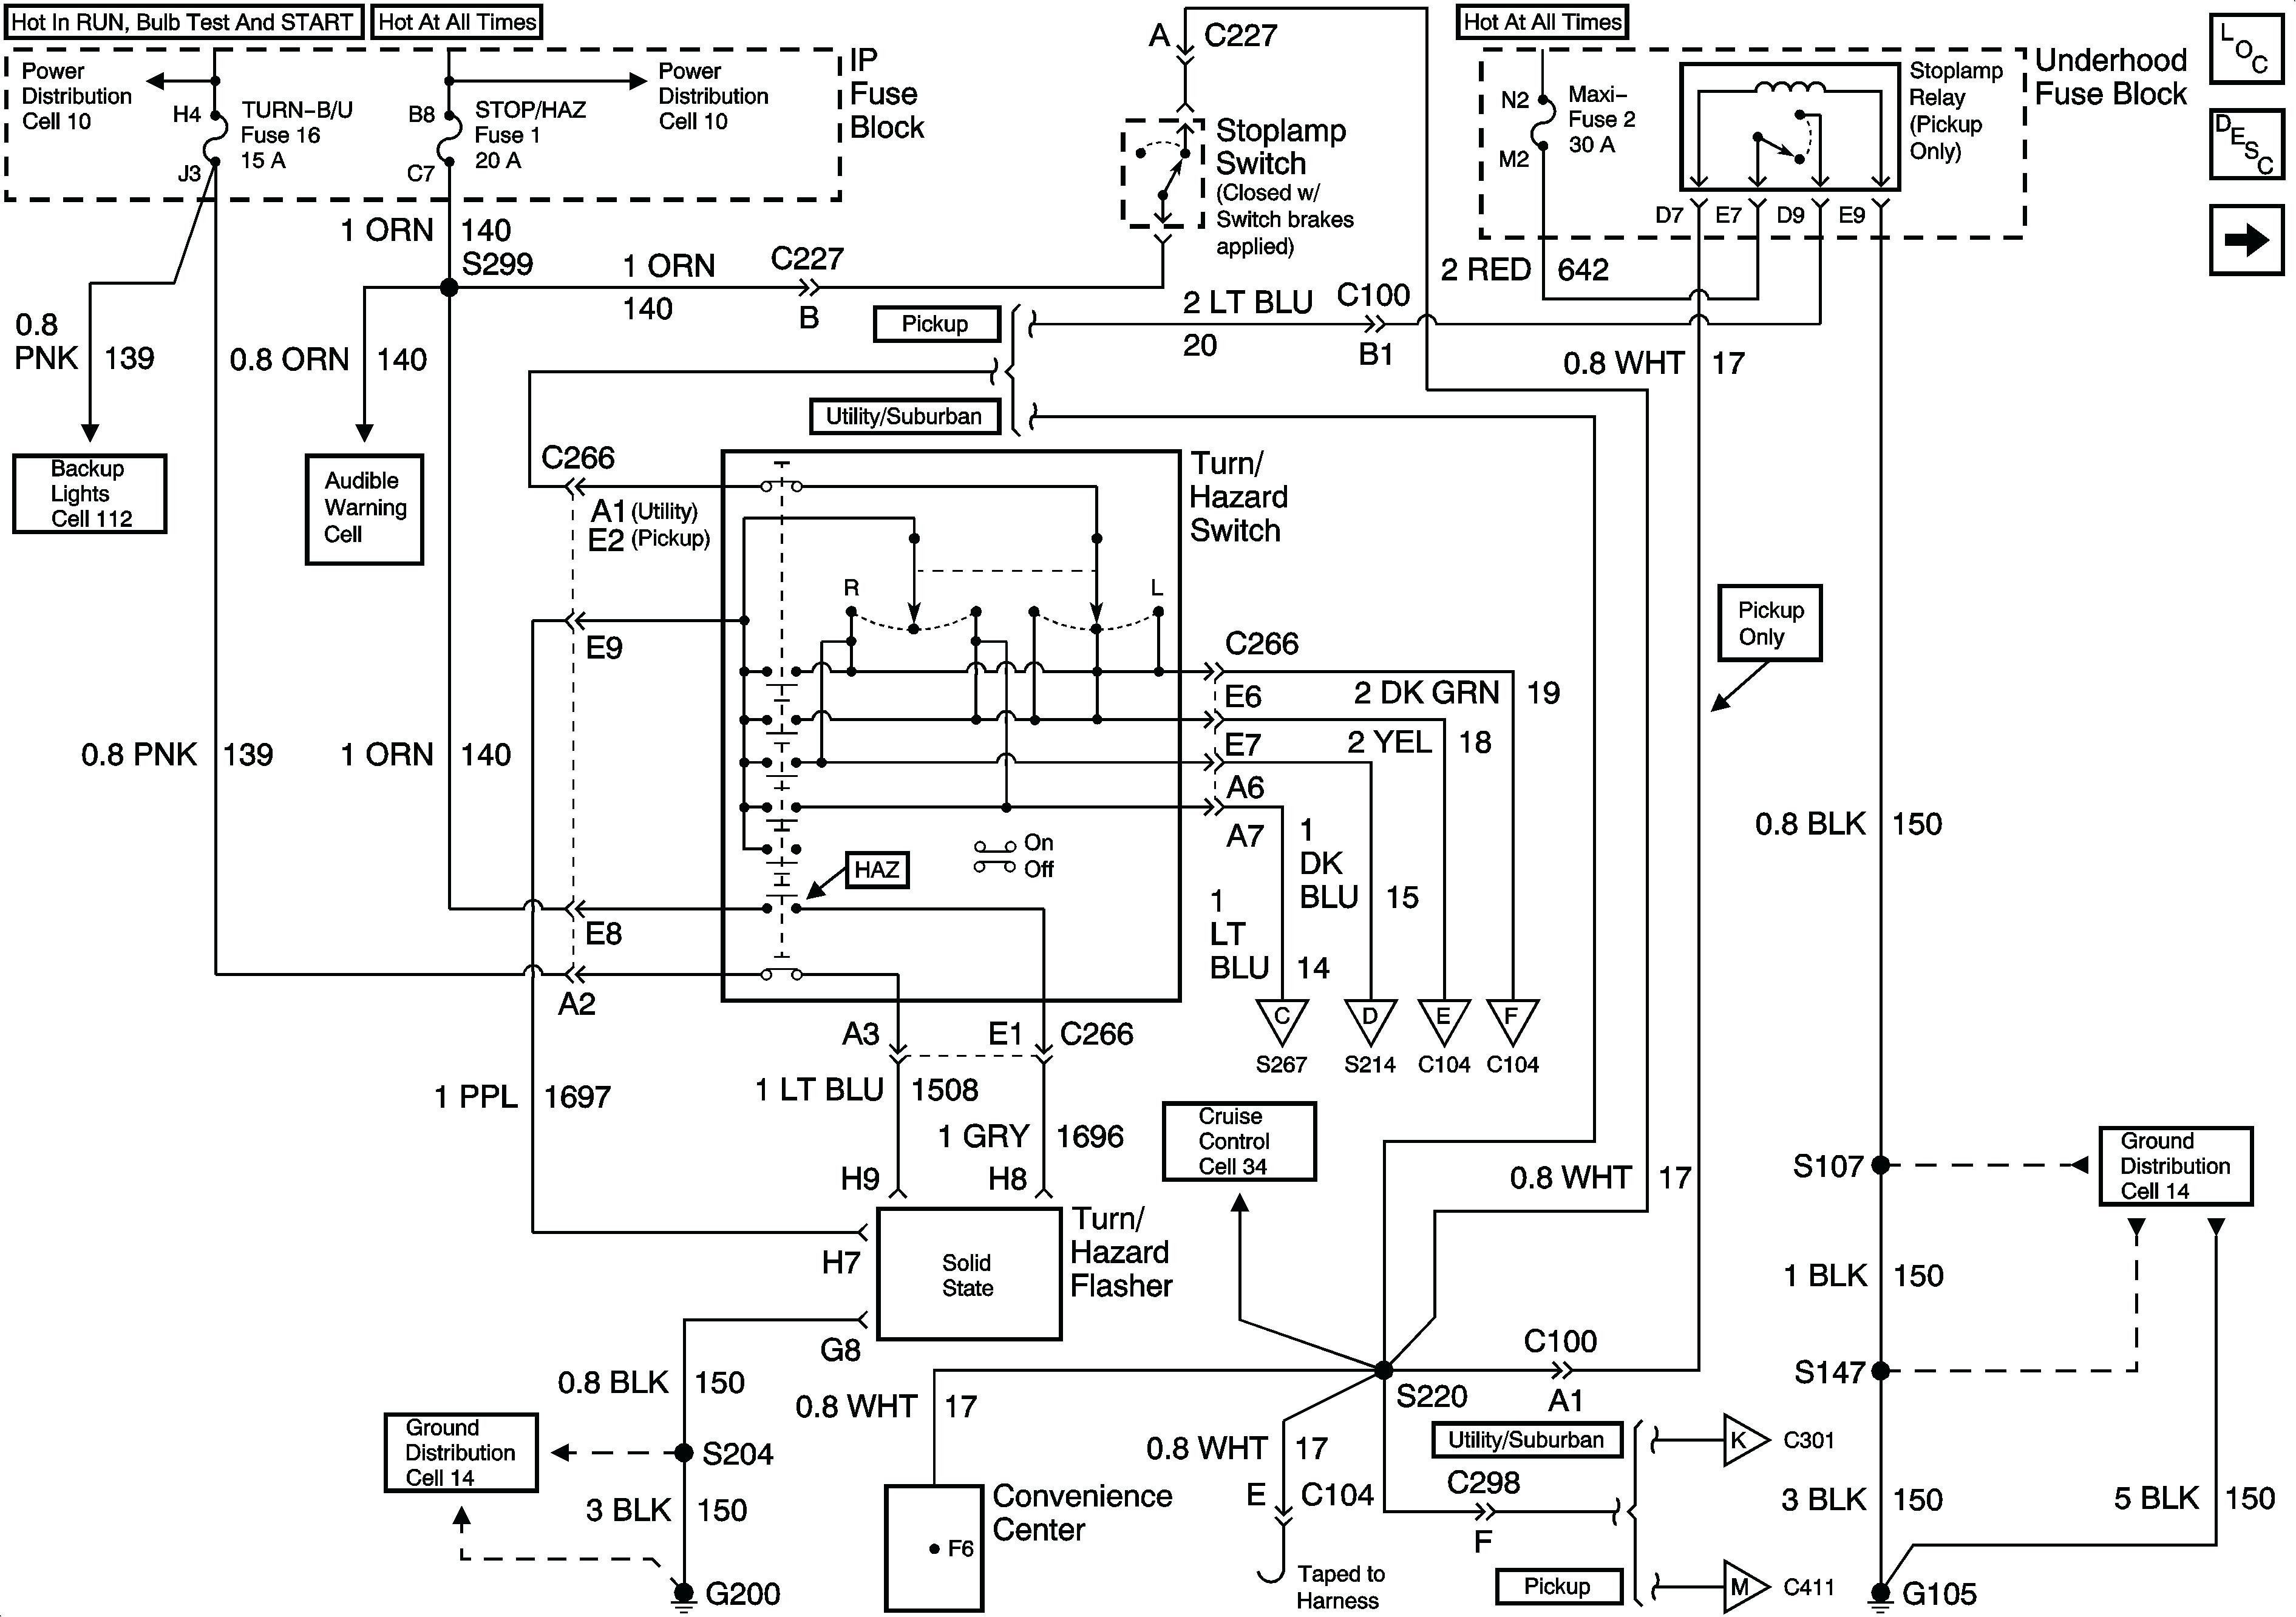 14 Best Sample Of Autodata Wiring Diagrams Technique Https Bacamajalah Com 14 Best Sample Of Autodata Wiring Diag Diagram Chrysler Town And Country Audi A4